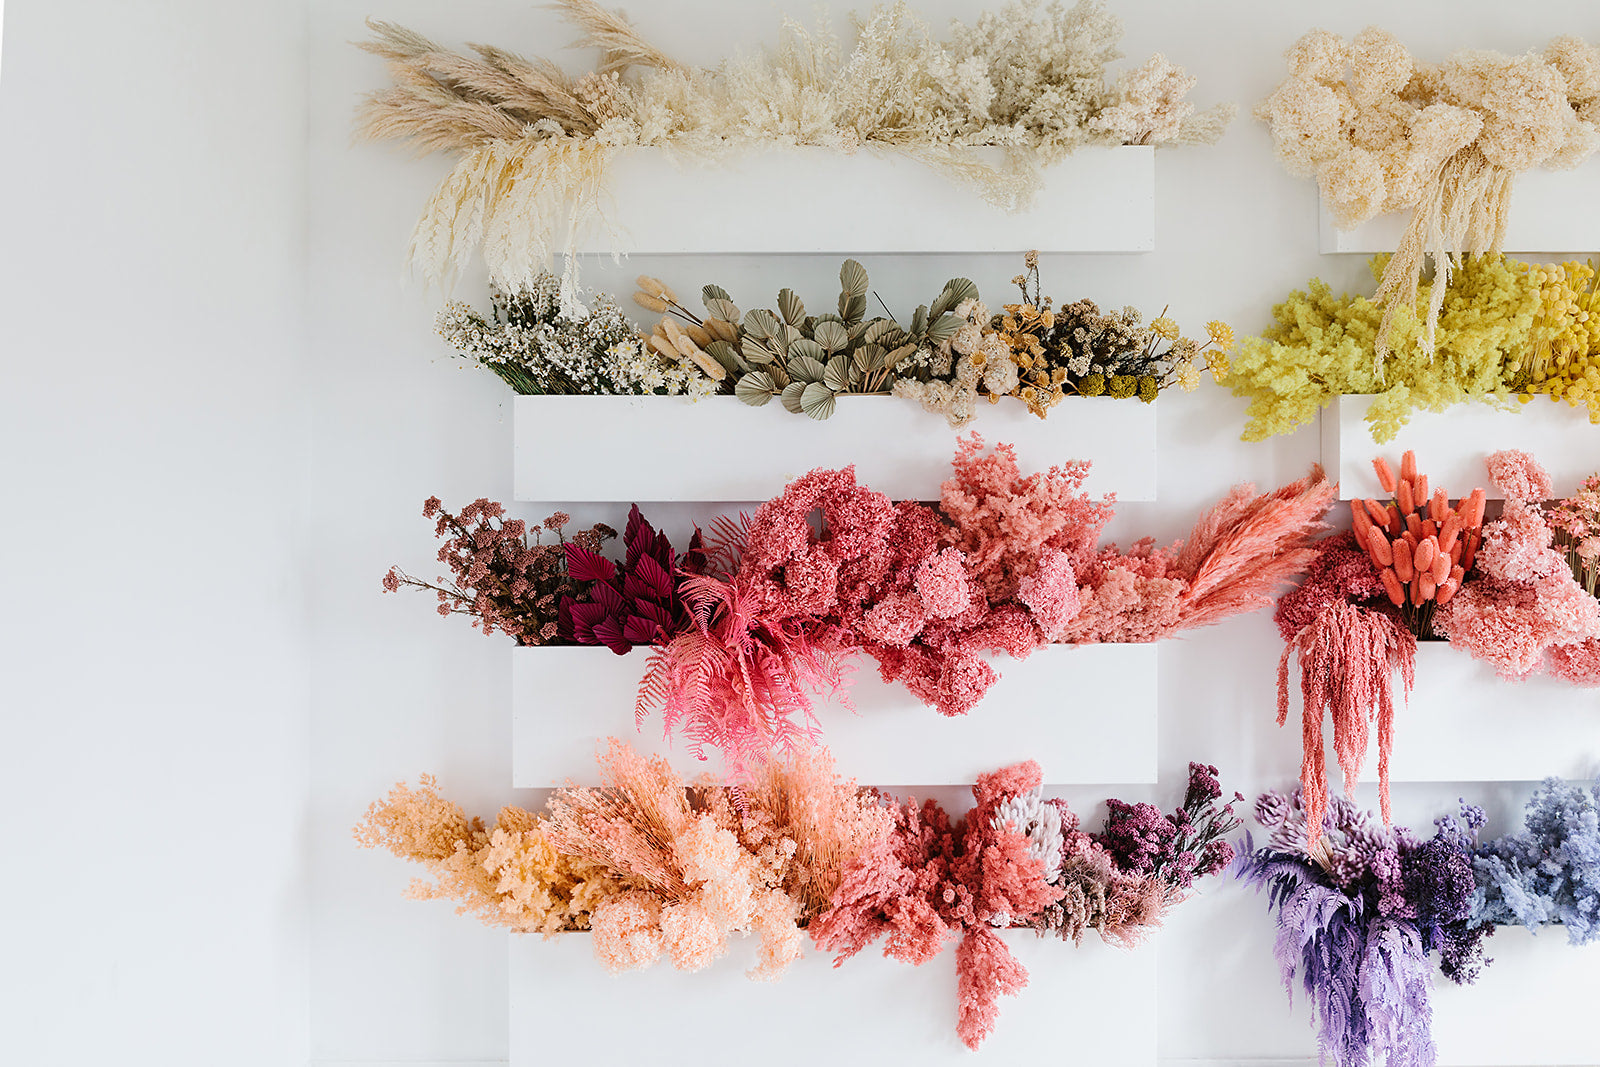 https://www.bhg.com.au/dried-flower-trend